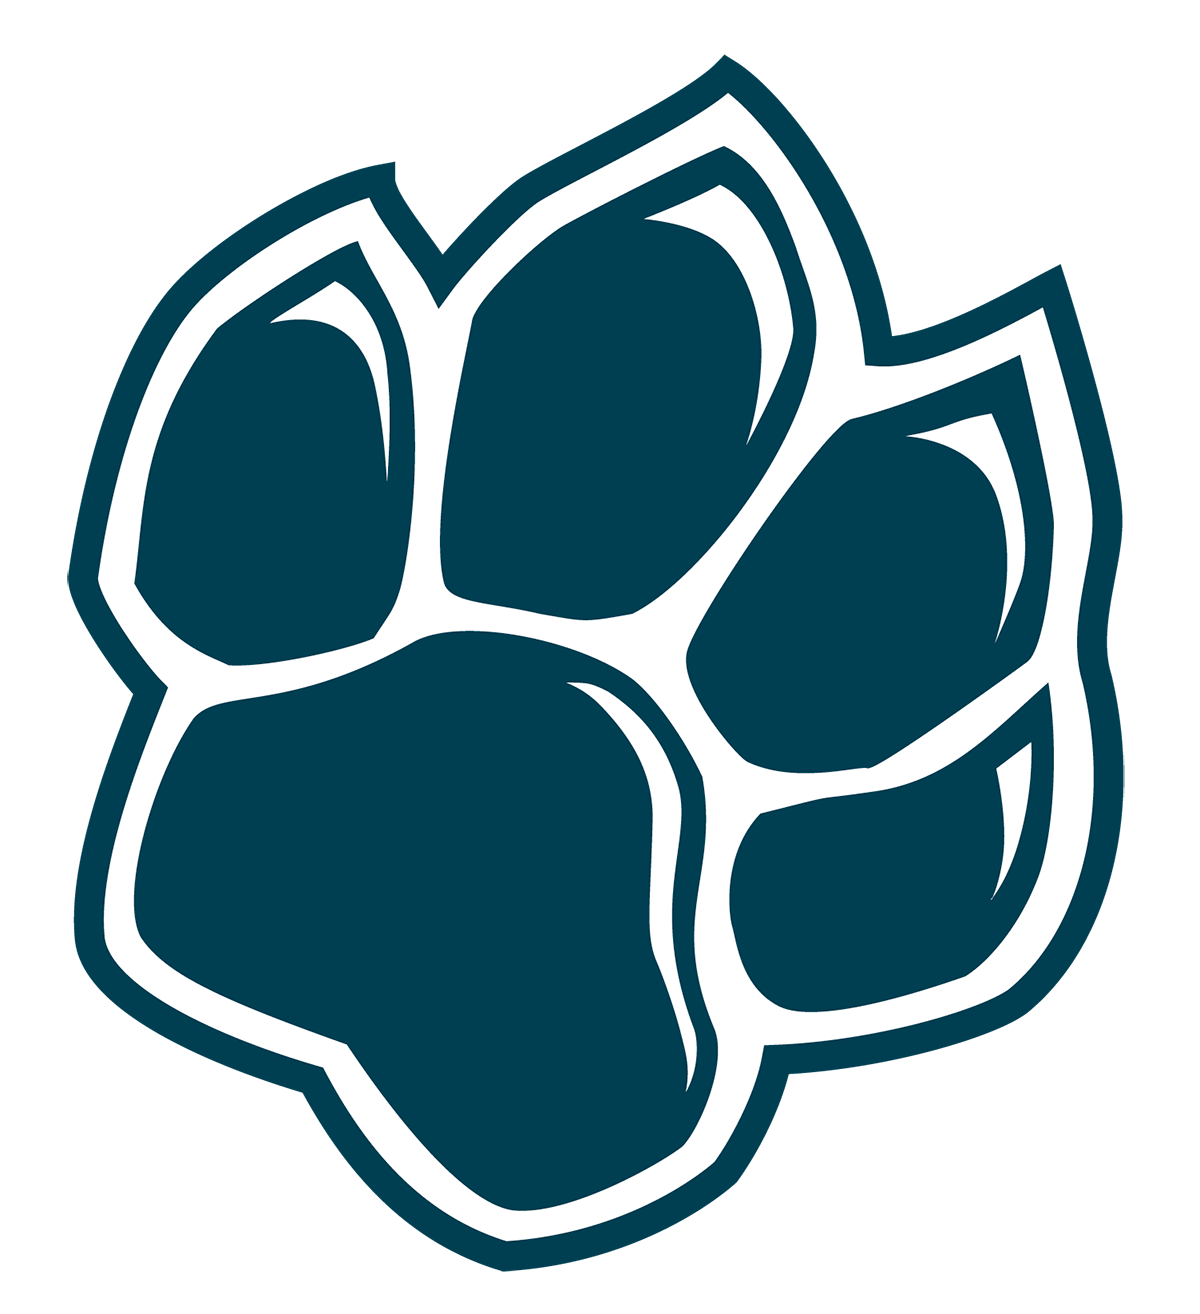 cougar paw graphic